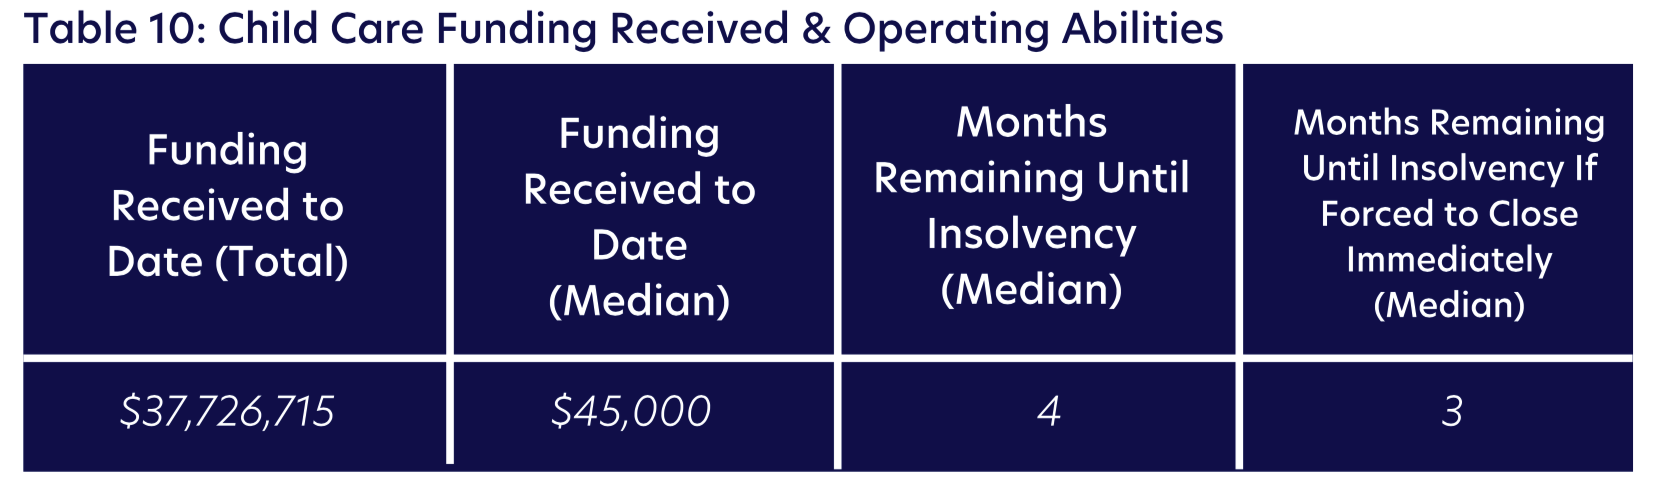 Table 10: Child Care Funding Received & Operating Abilities